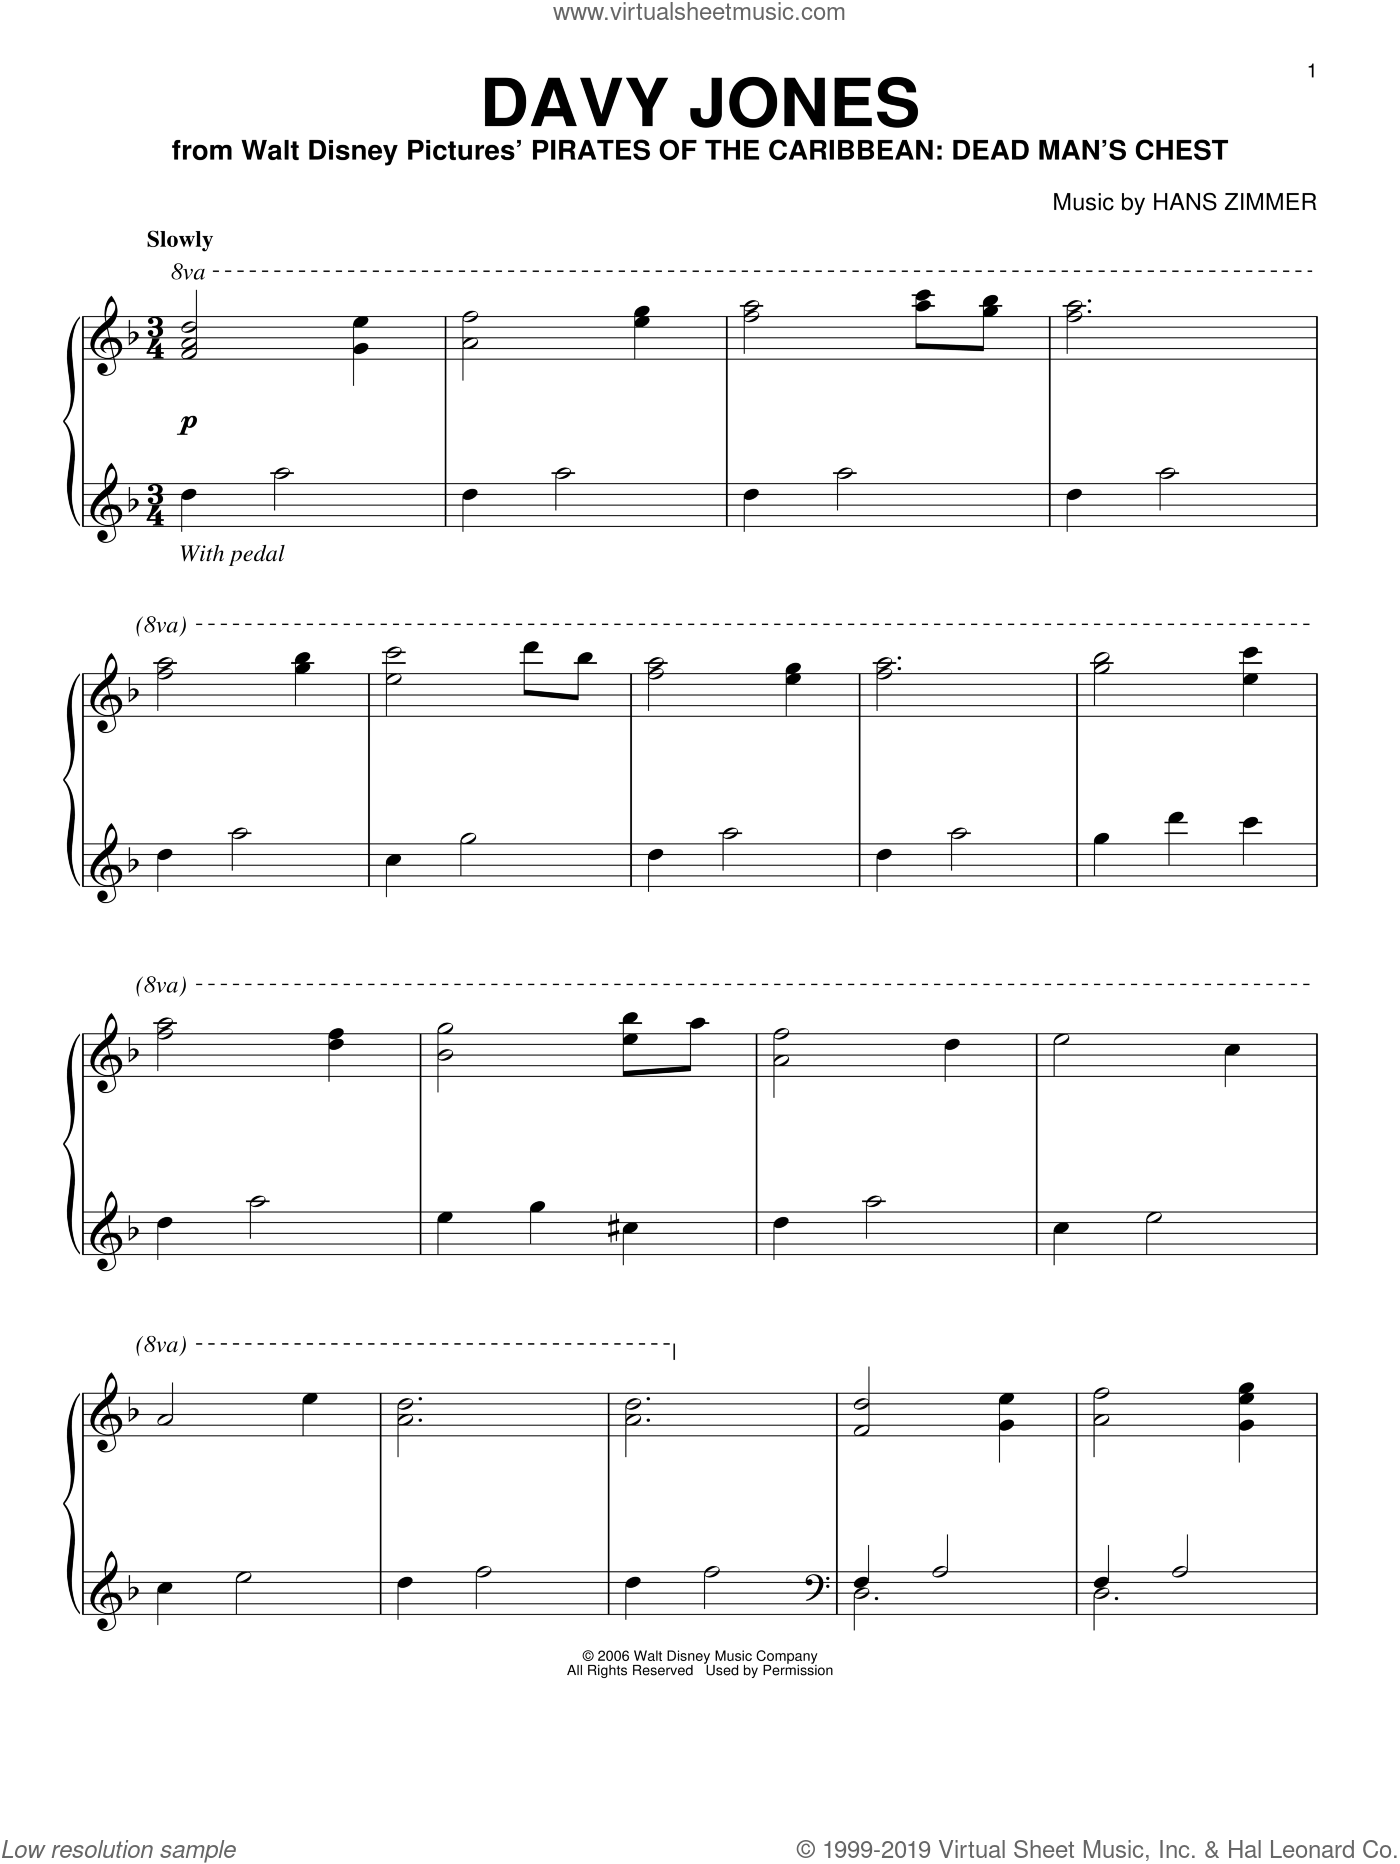 Davy Jones sheet music for piano solo by Hans Zimmer, intermediate skill level